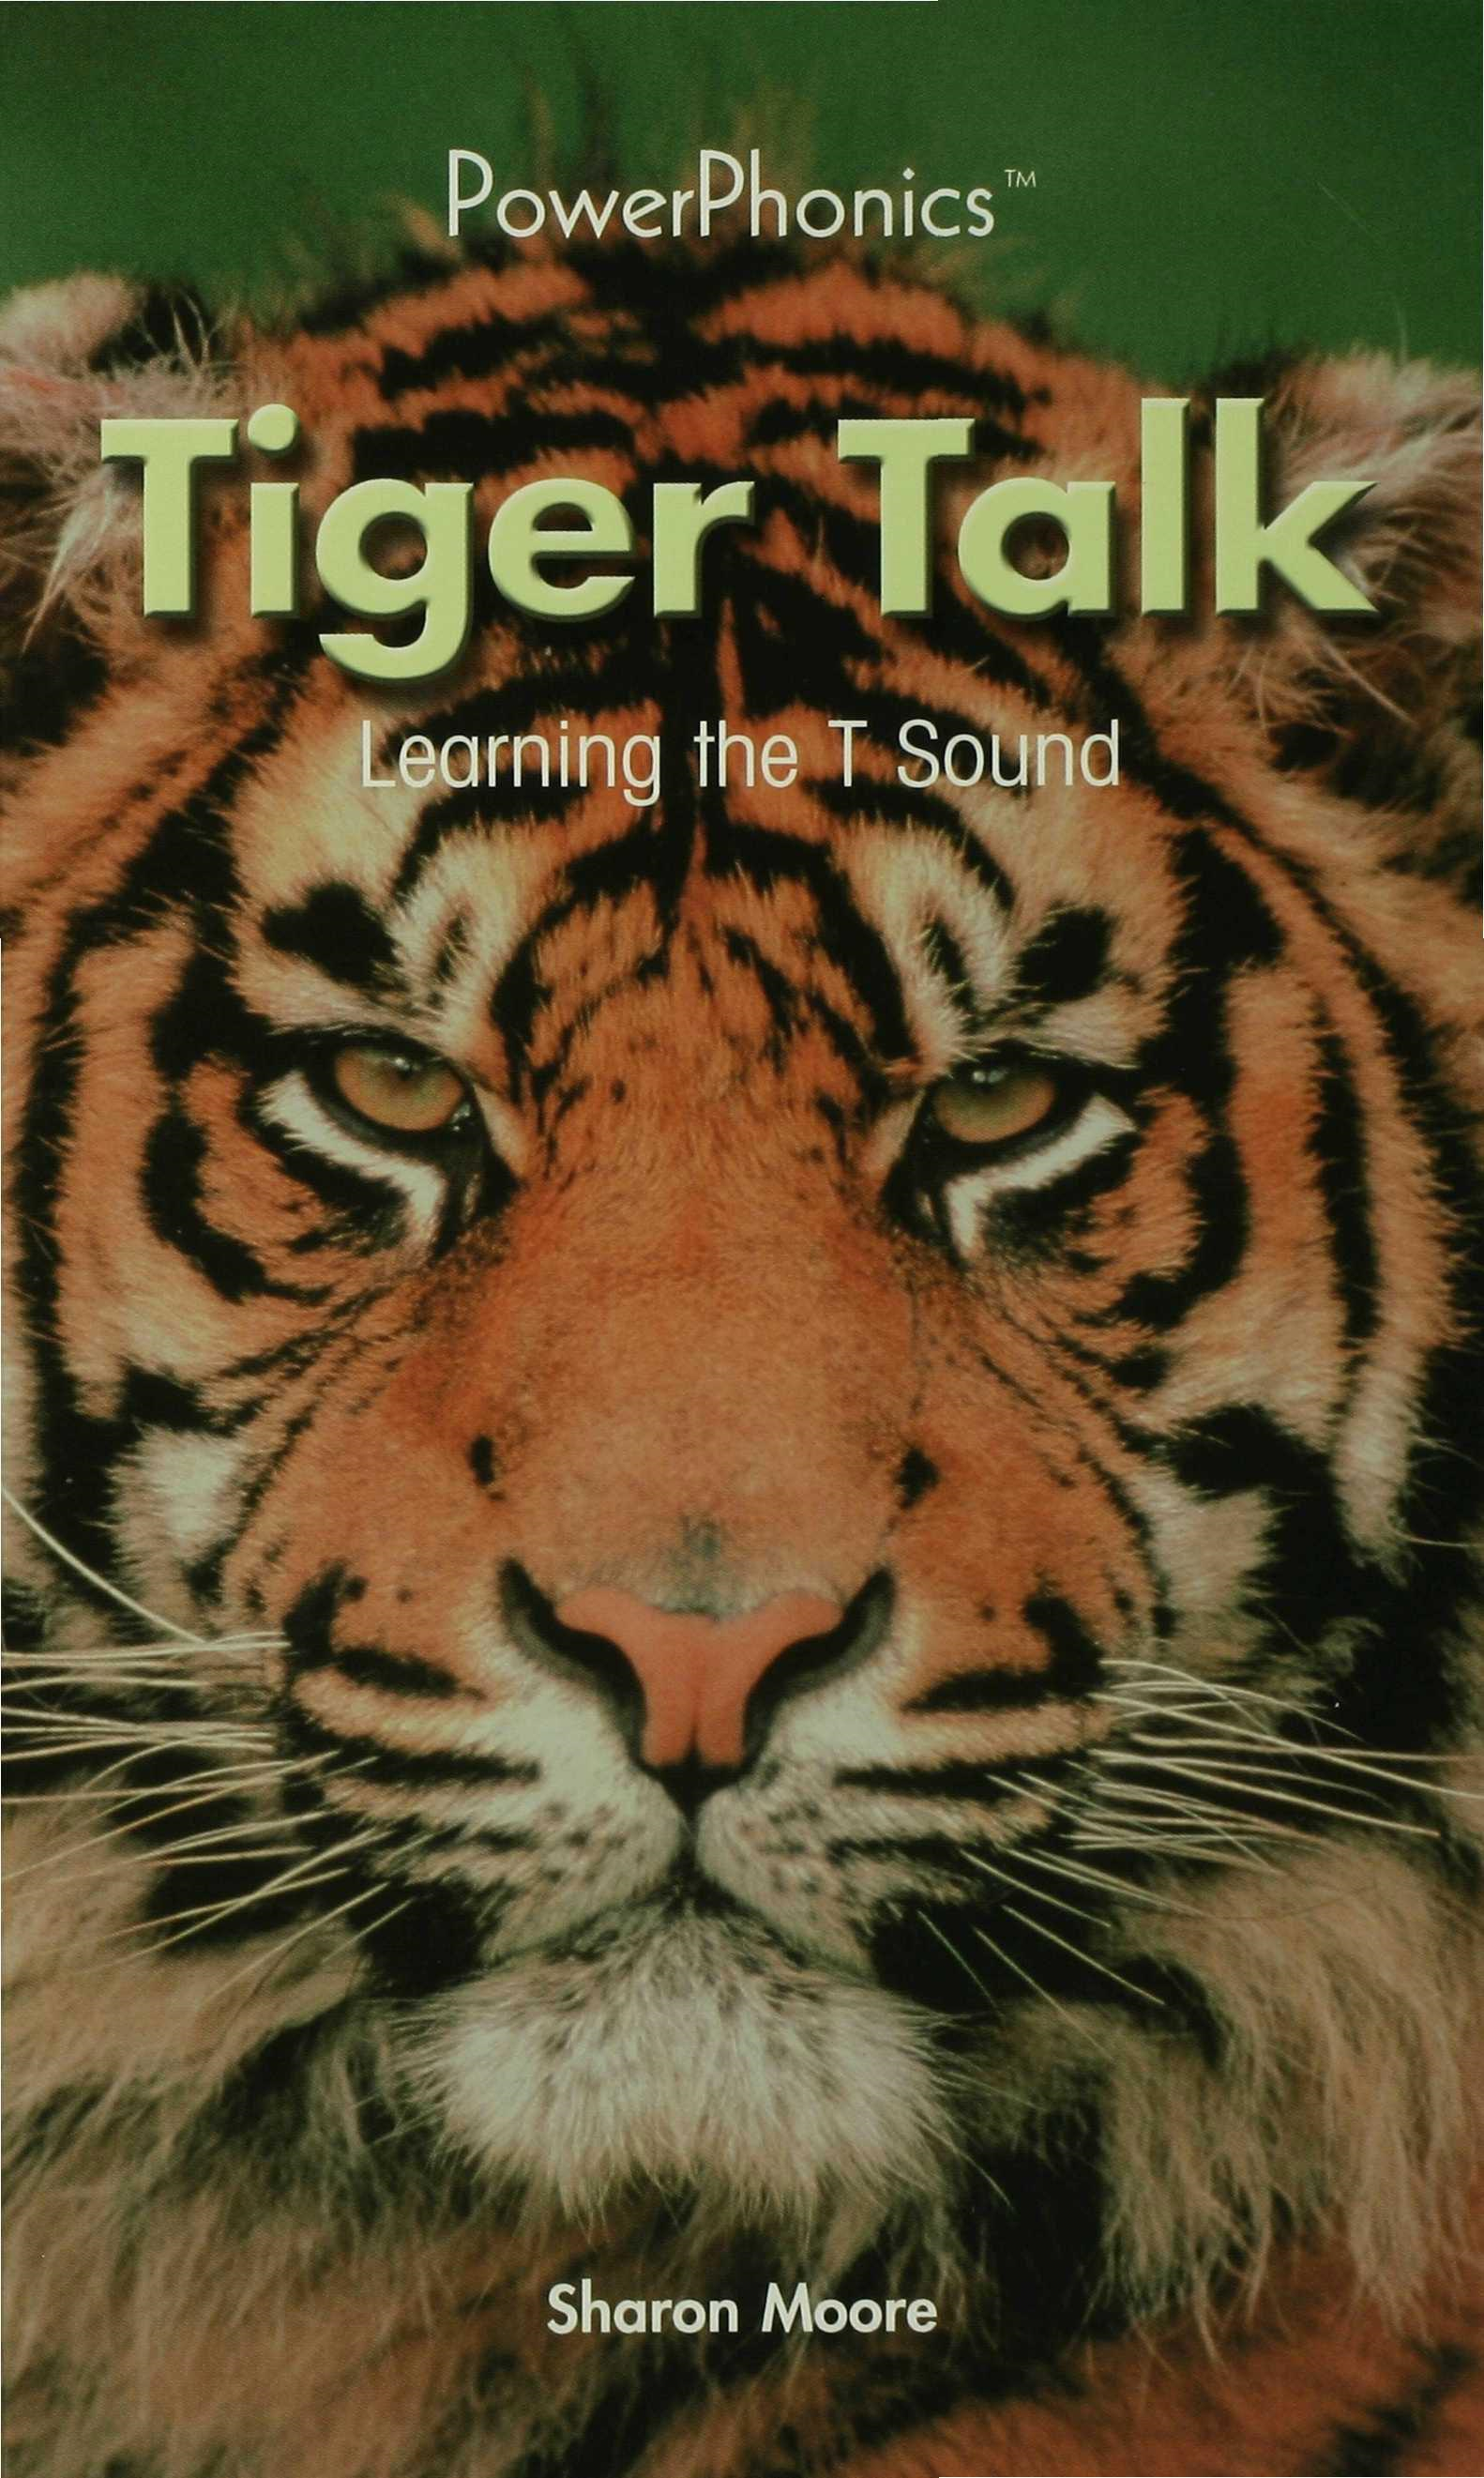 S. Moore - Tiger Talk: Learning the T Sound